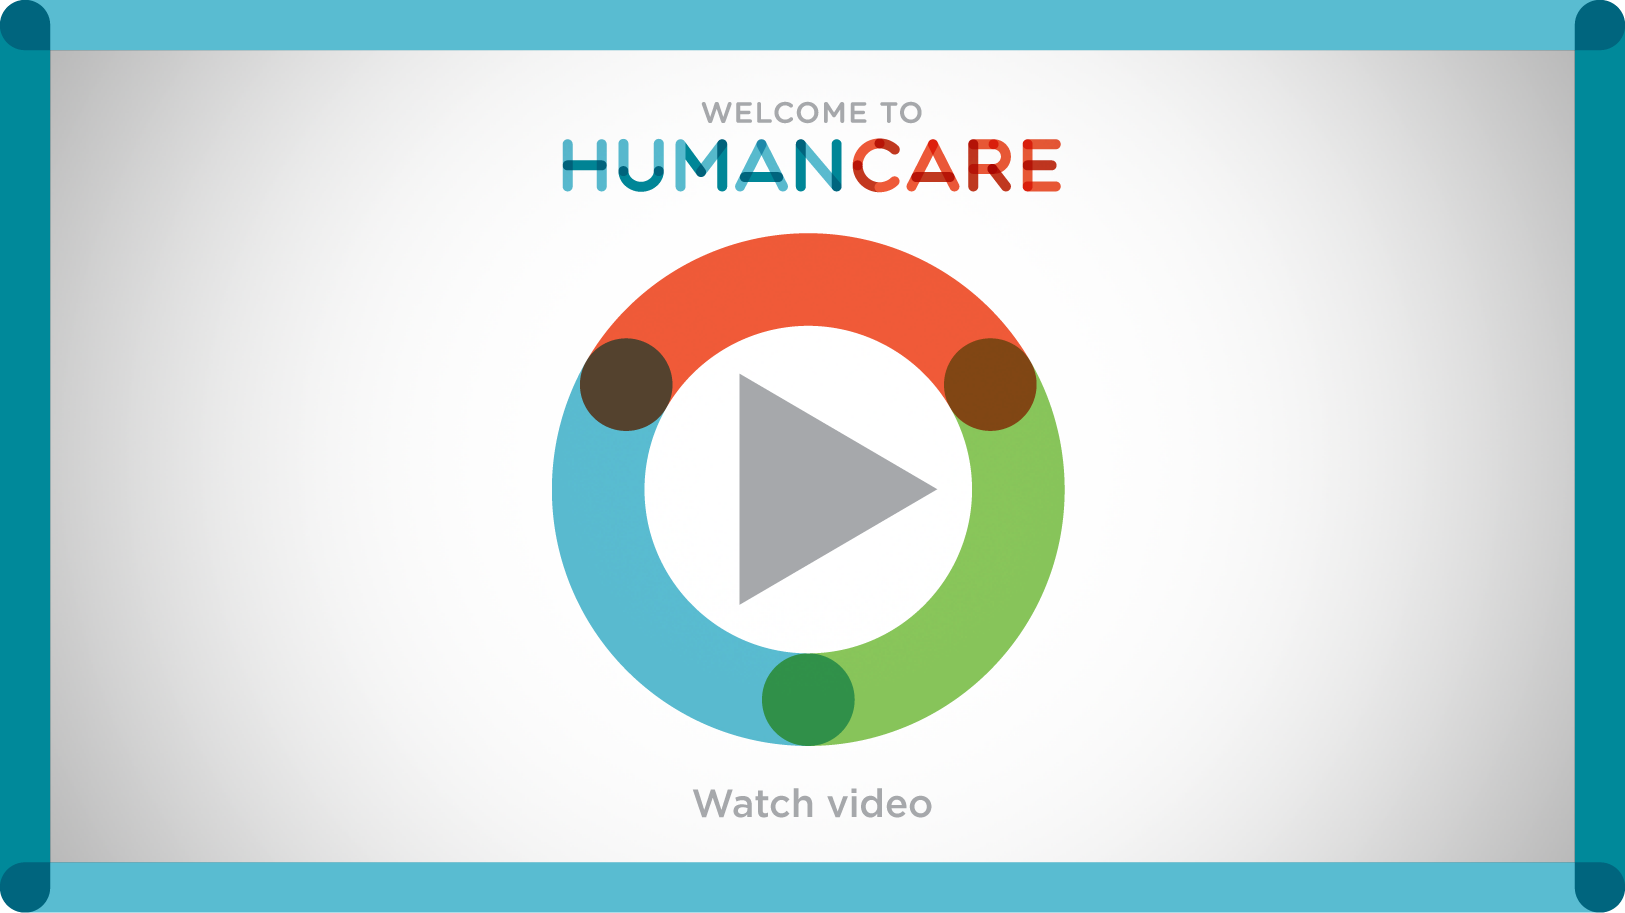 Watch the Humancare video.